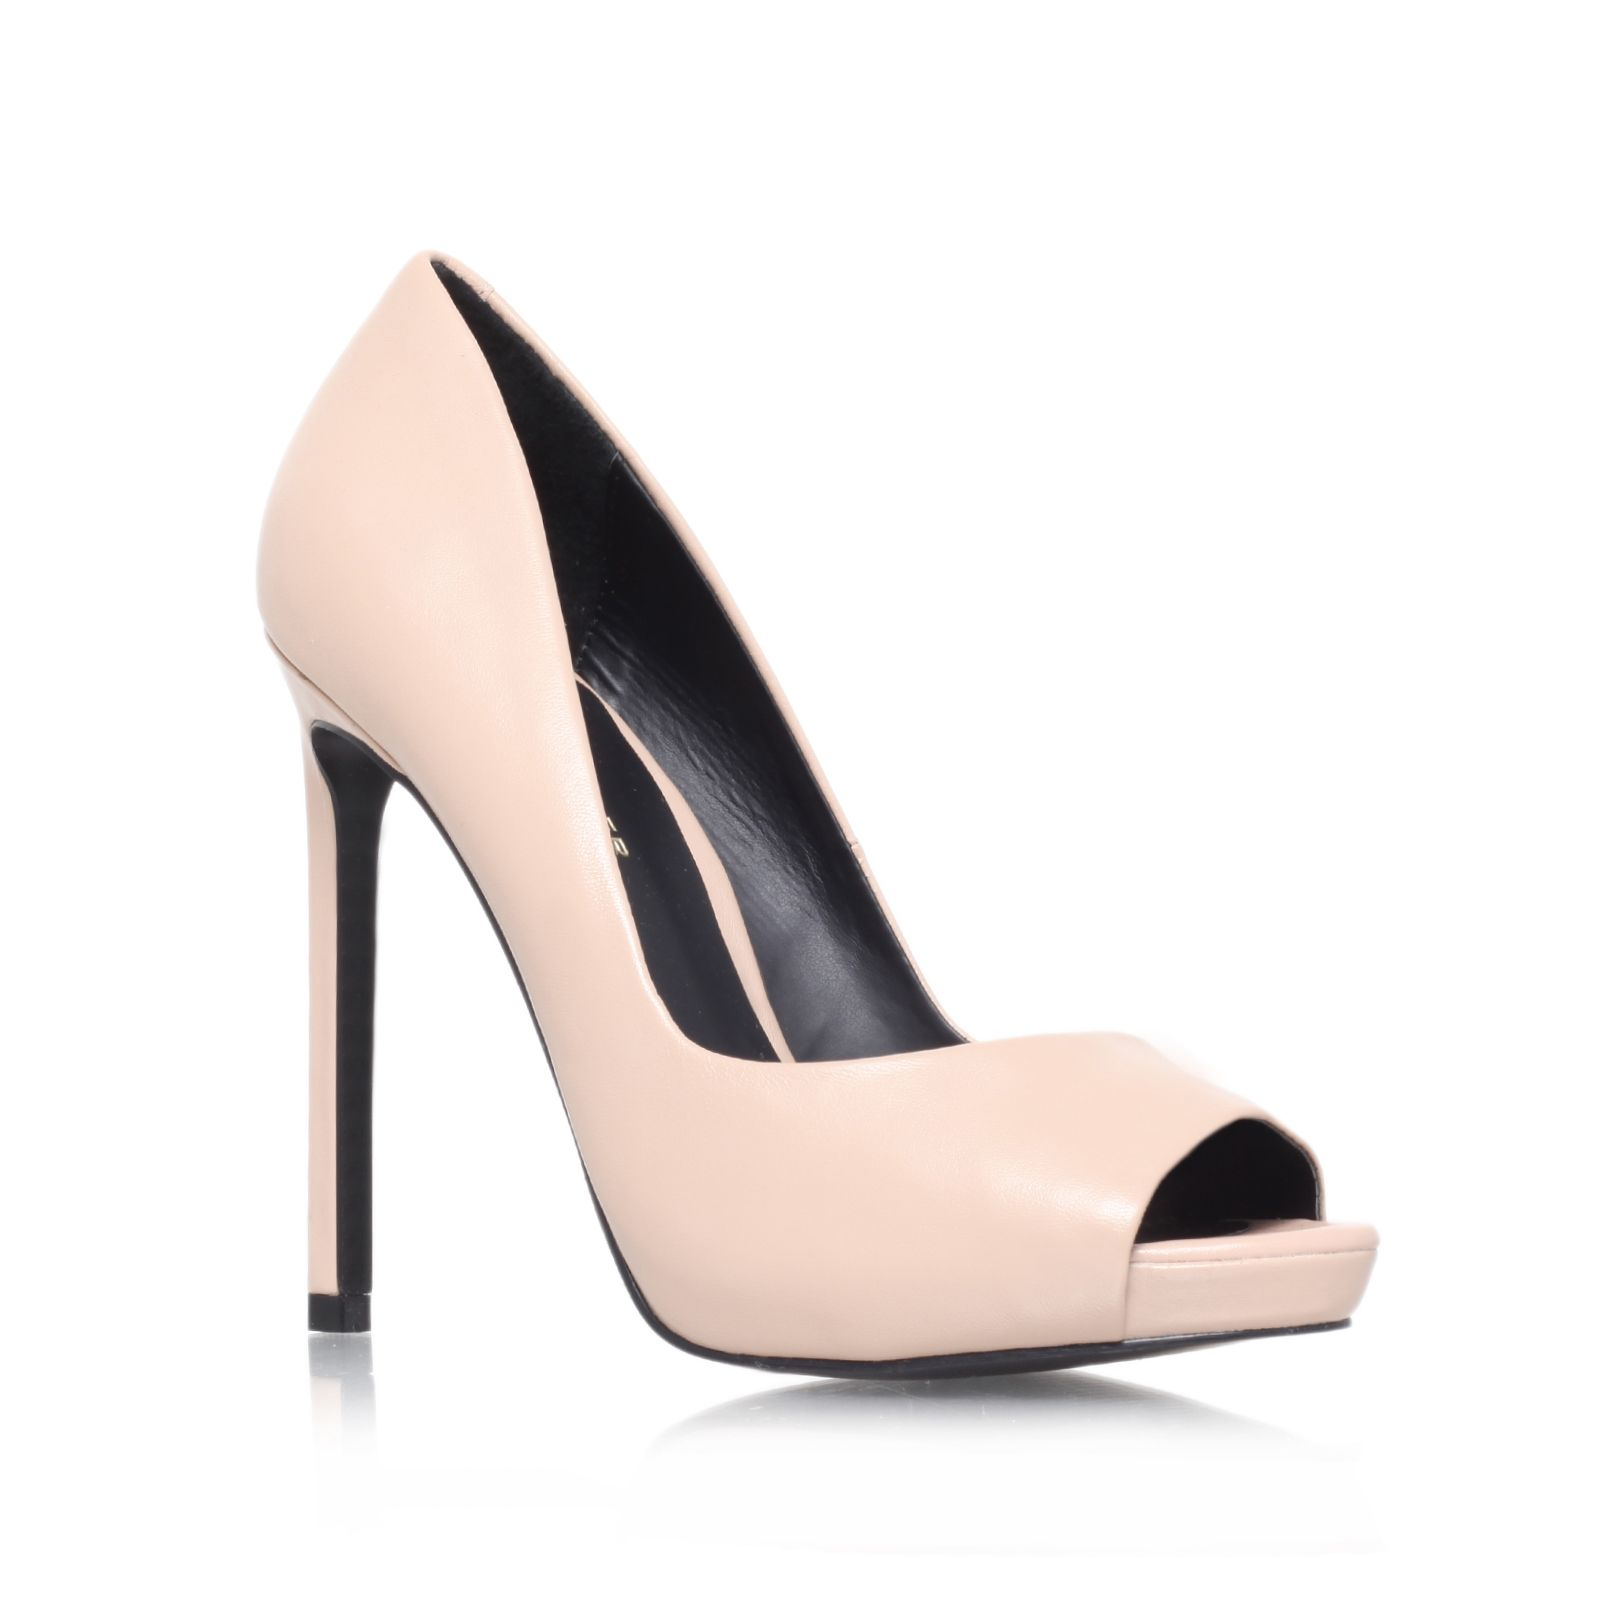 Eleri high heel court shoes